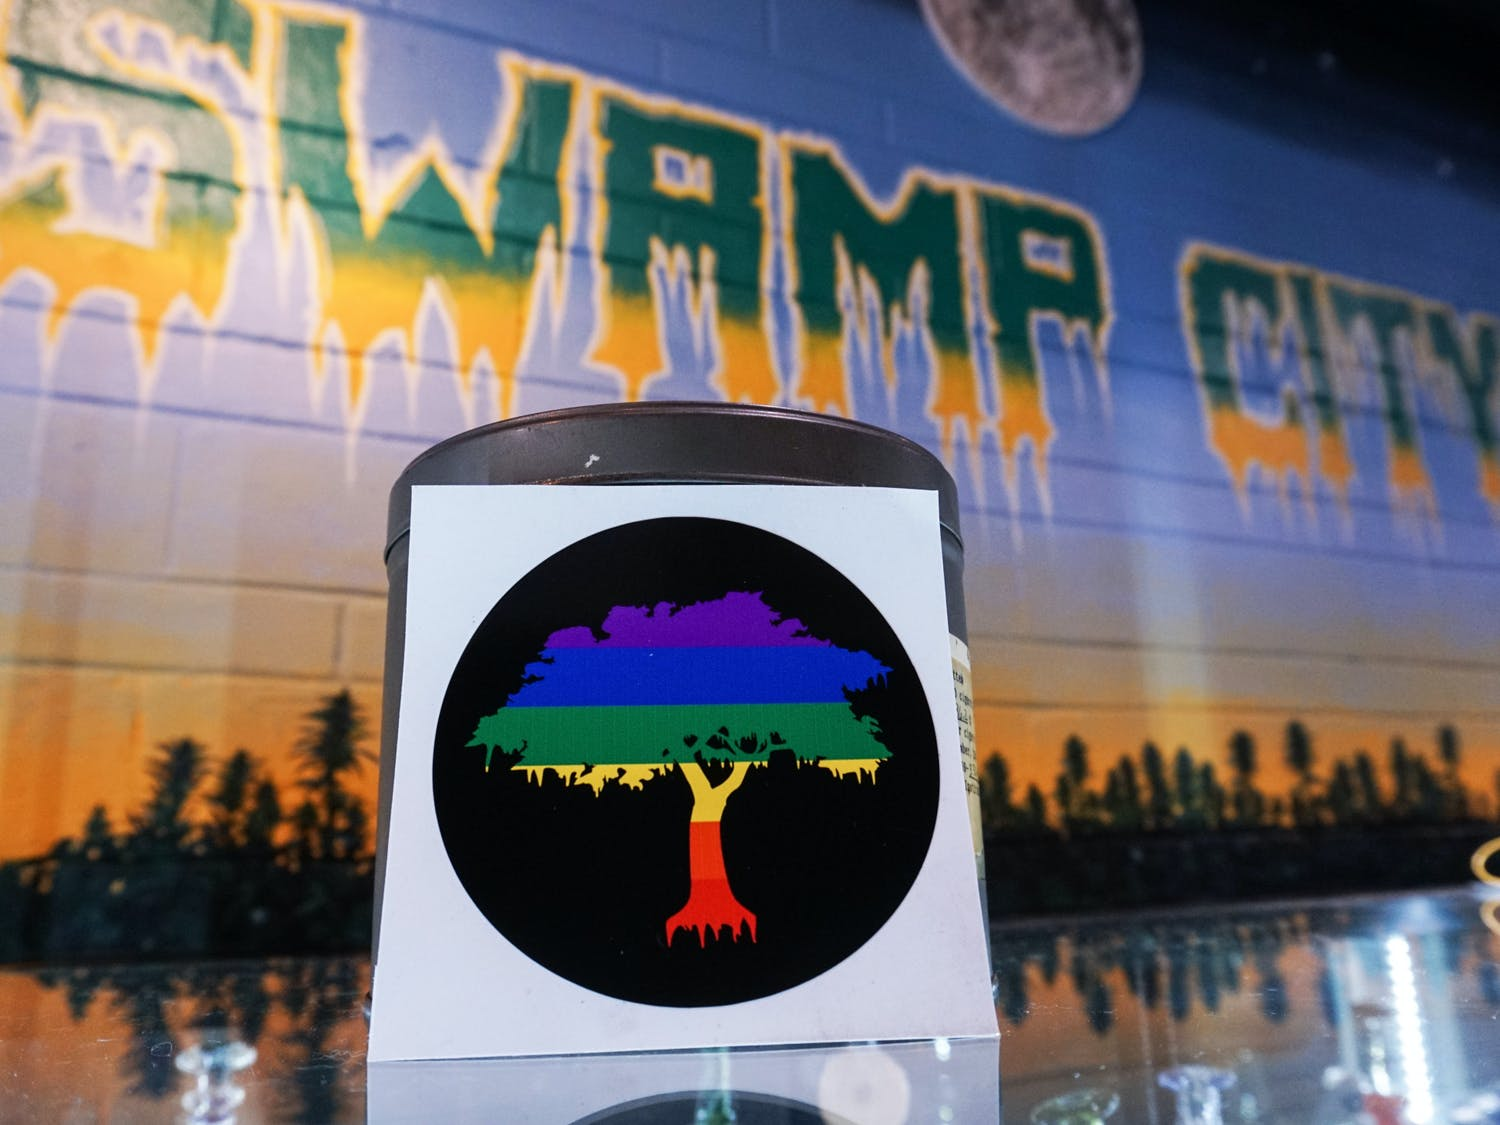 A Pride Tree sticker at Swamp City Gallery Lounge on Sunday, June 13, 2021. Swamp City is running a pride month campaign, where patrons can take a photo of pride tree stickers placed in different locations for a chance to win $300 worth of accessories and products.